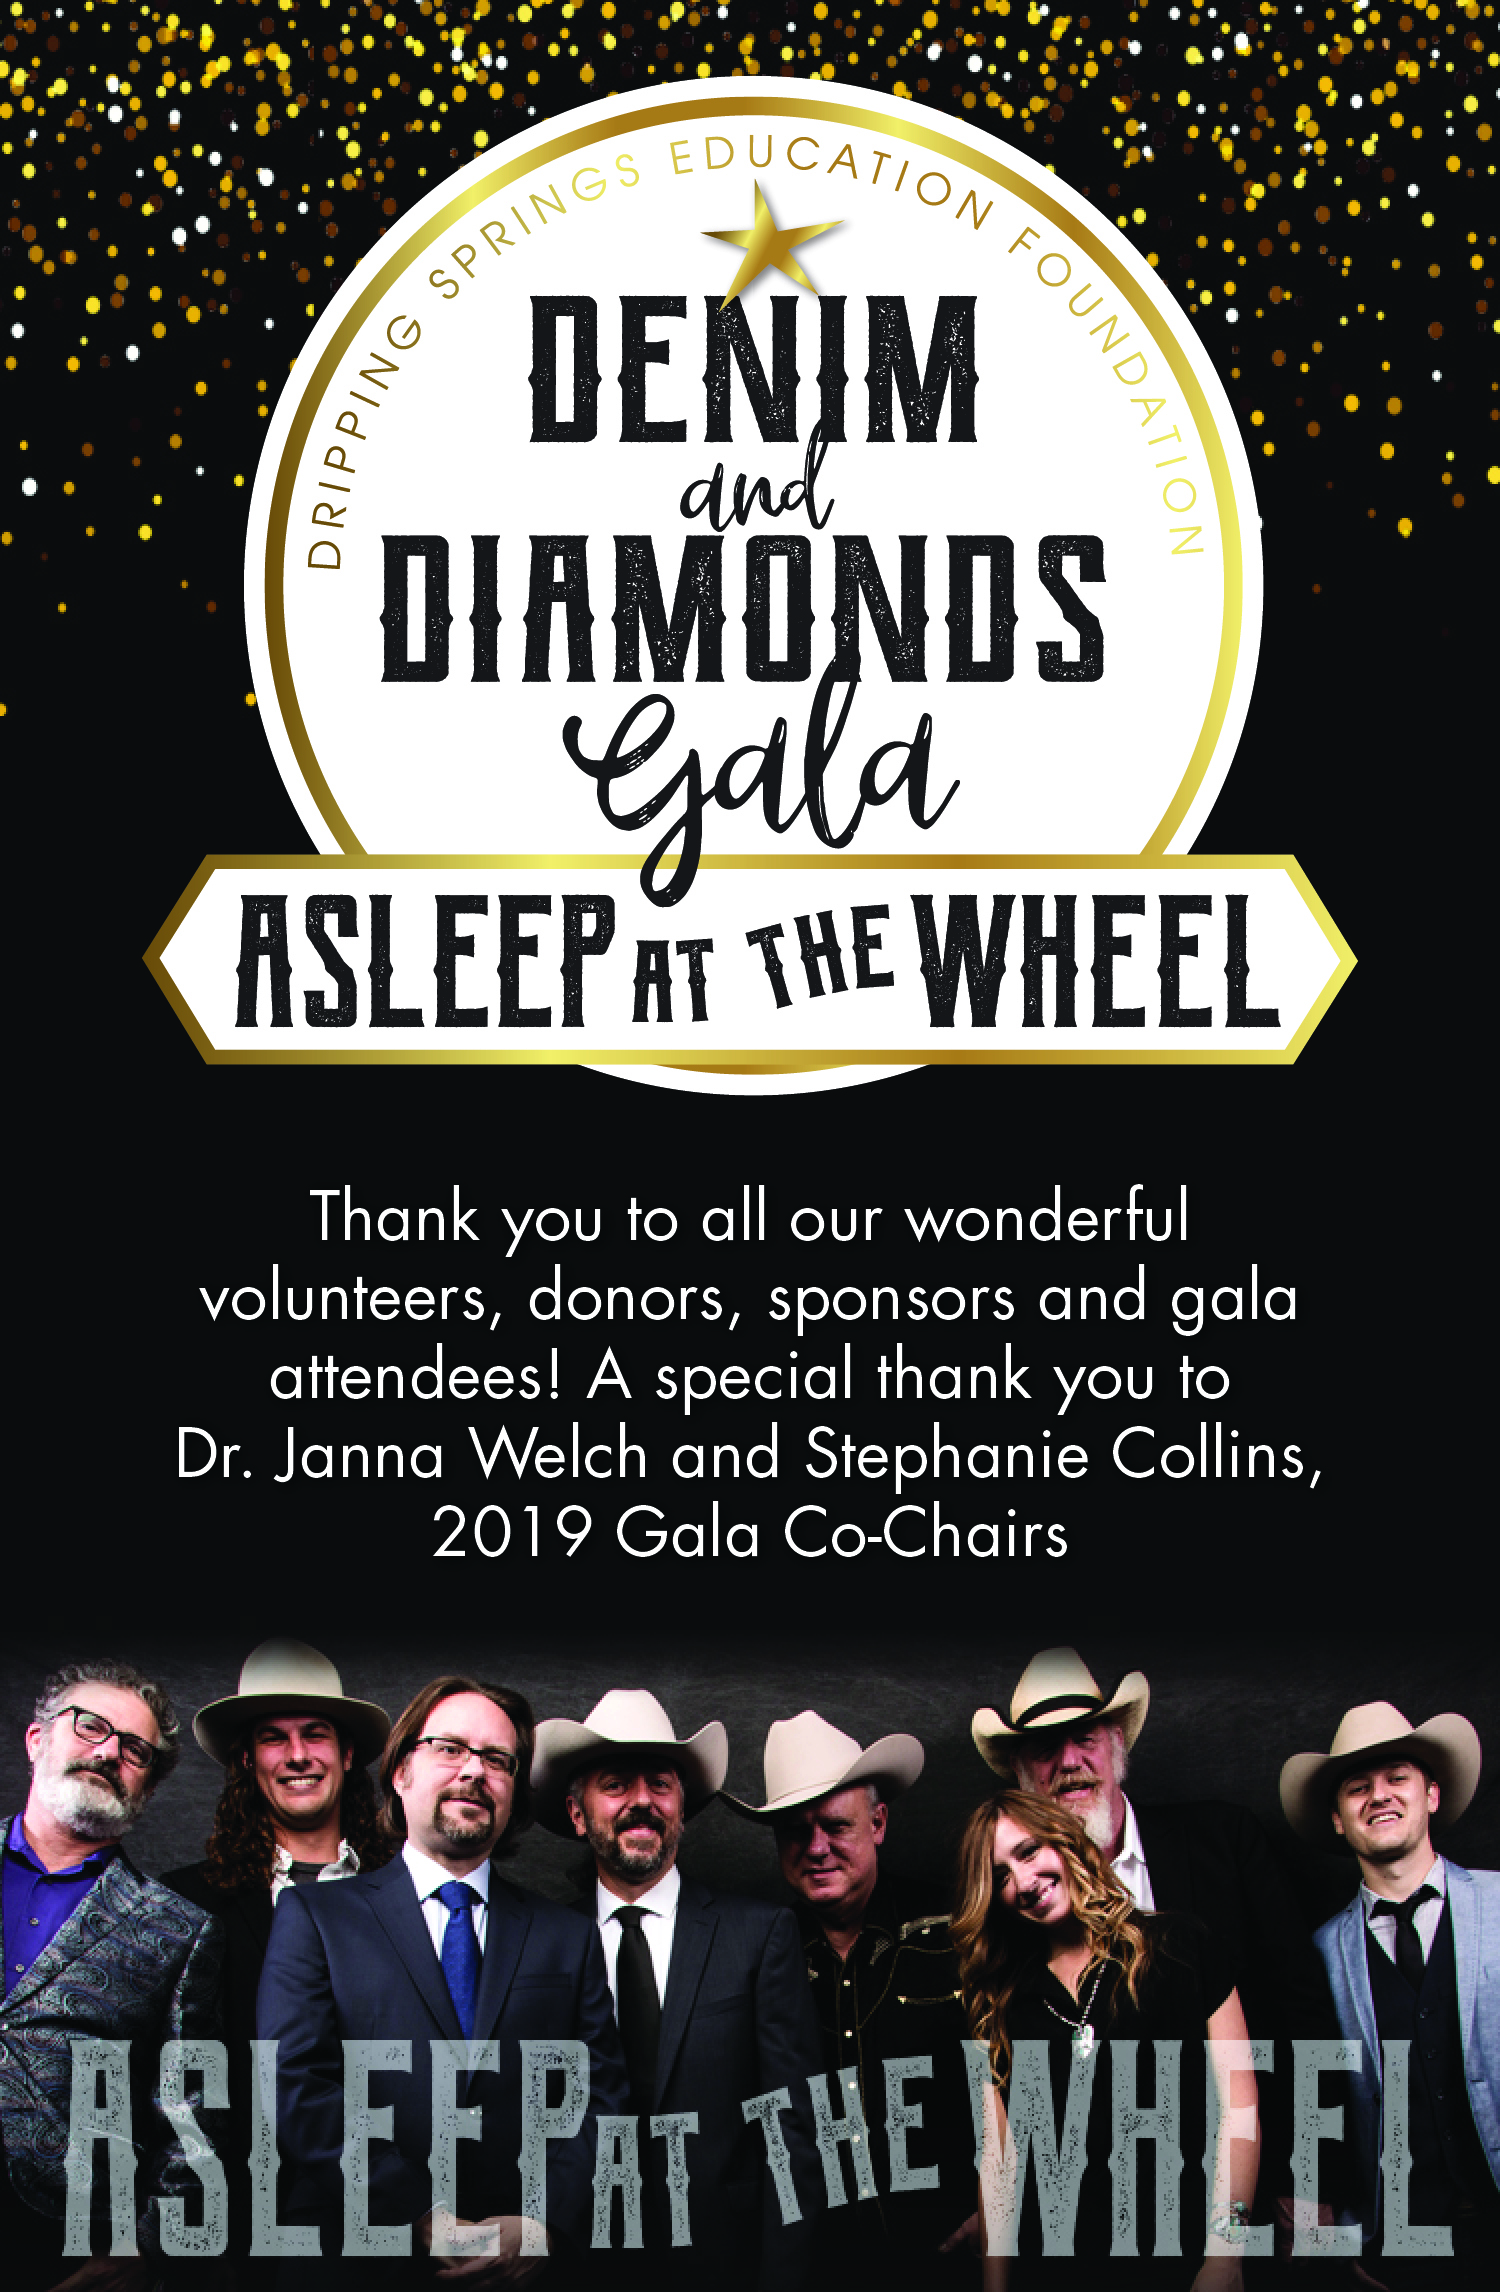 Thank You to all our supporters!  2019 Denim & Diamonds Gala — April 5, 2019